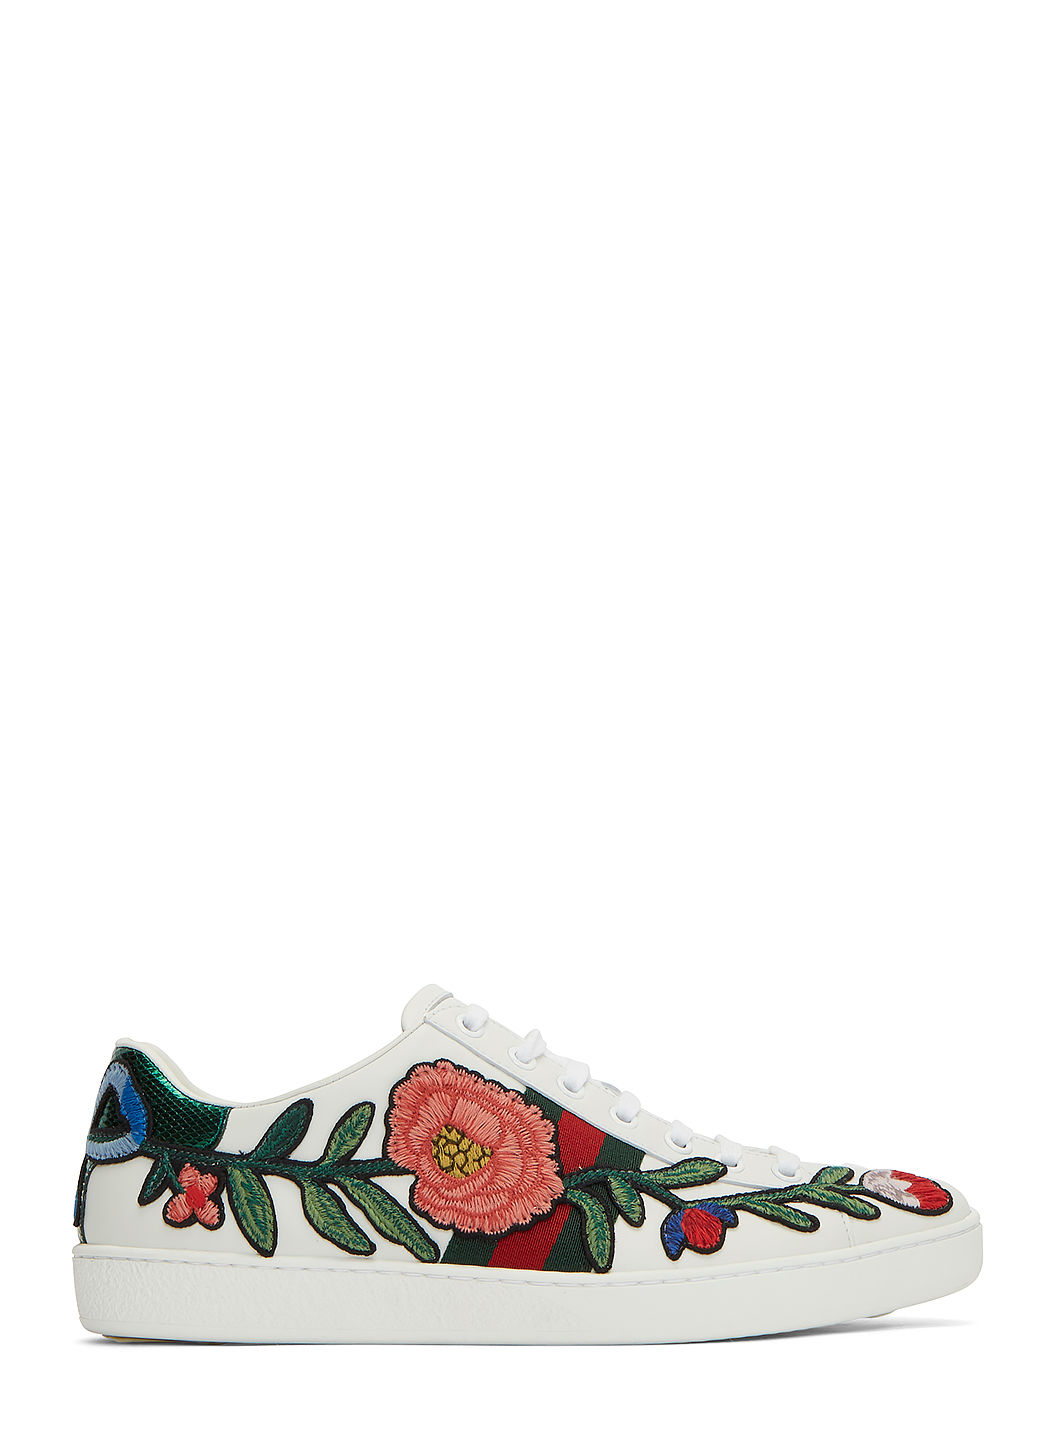 GUCCI New Ace Floral-Embroidered Low-Top Sneaker, White/Multi, Multi Colors at LN-CC